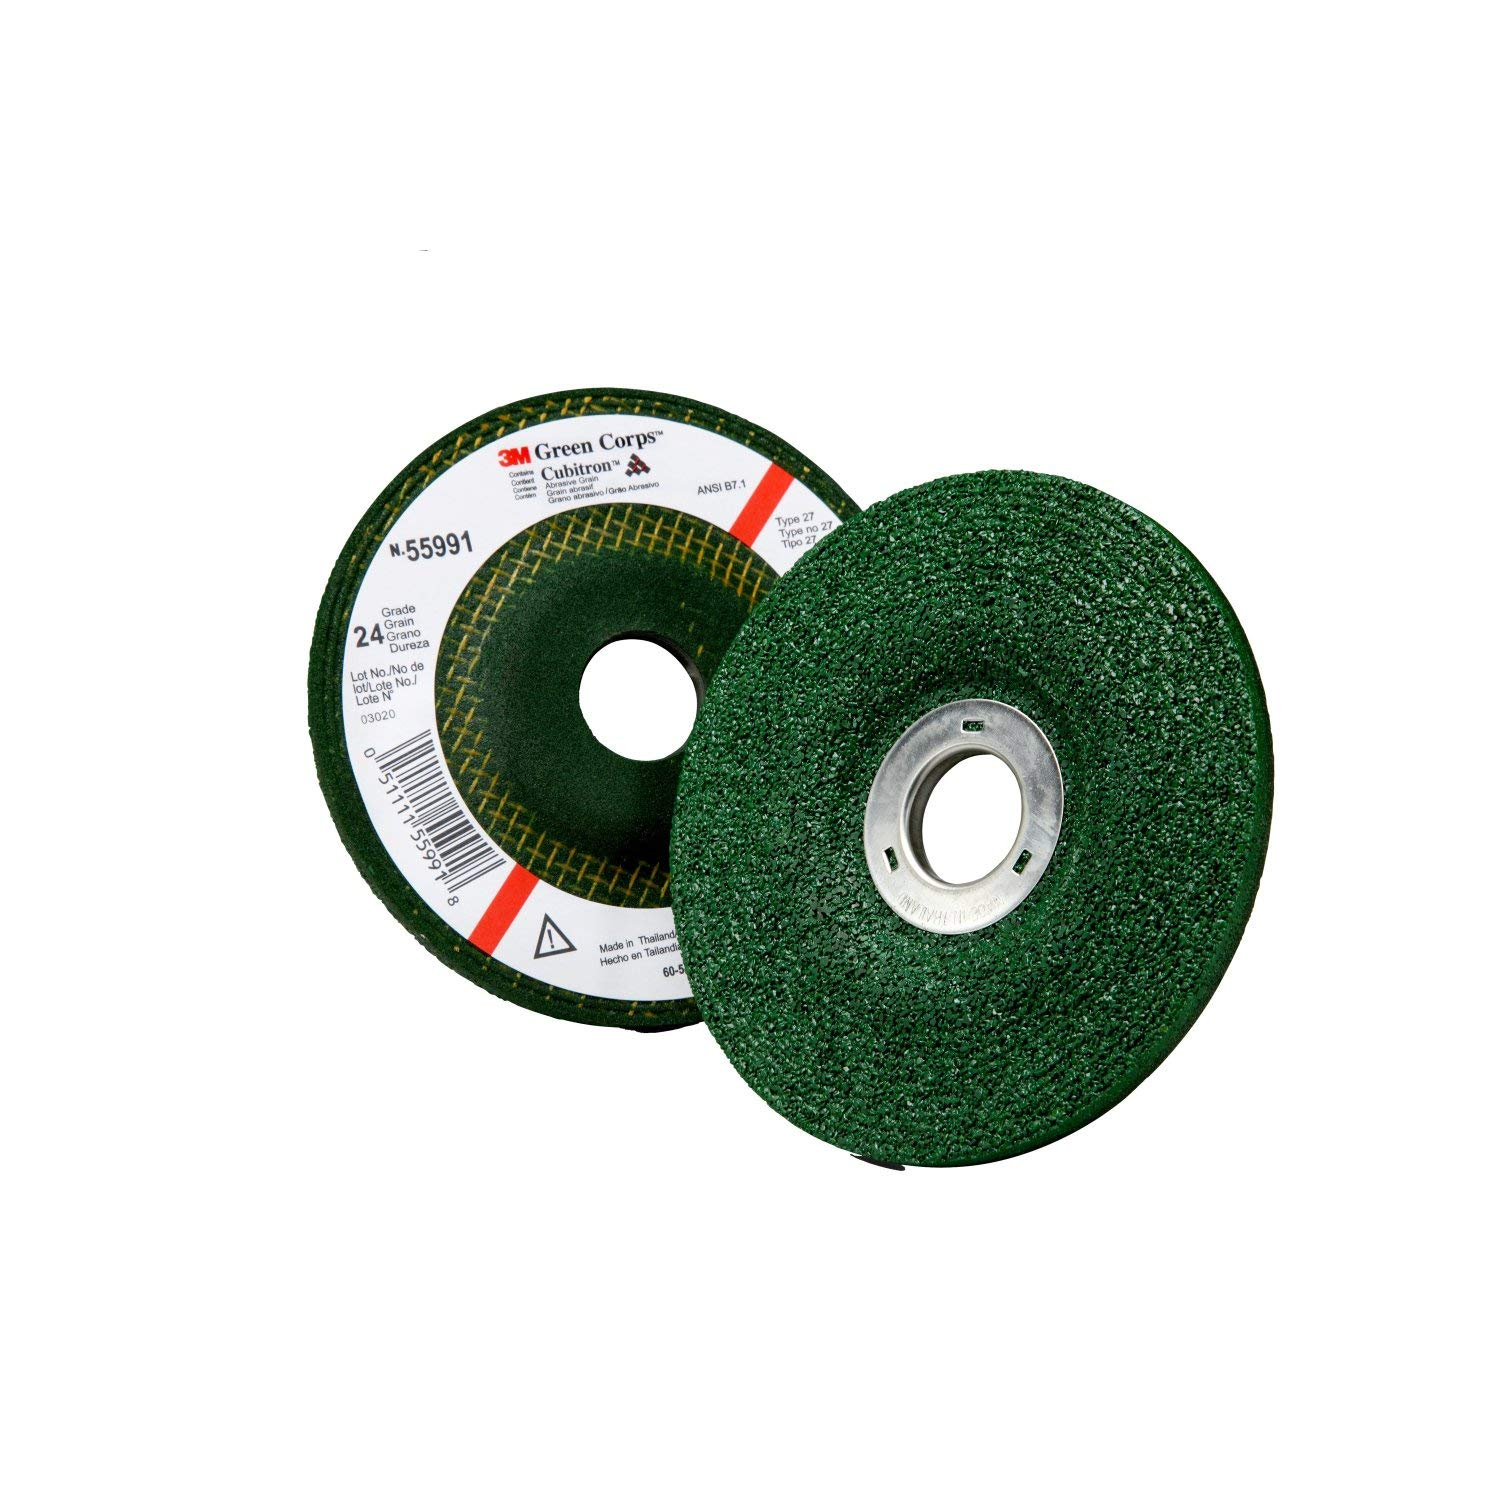 3M Green Corps Depressed Center Grinding Wheel, 24 4-1/2 in x 1/4 in x 7/8 in, 10 per Carton